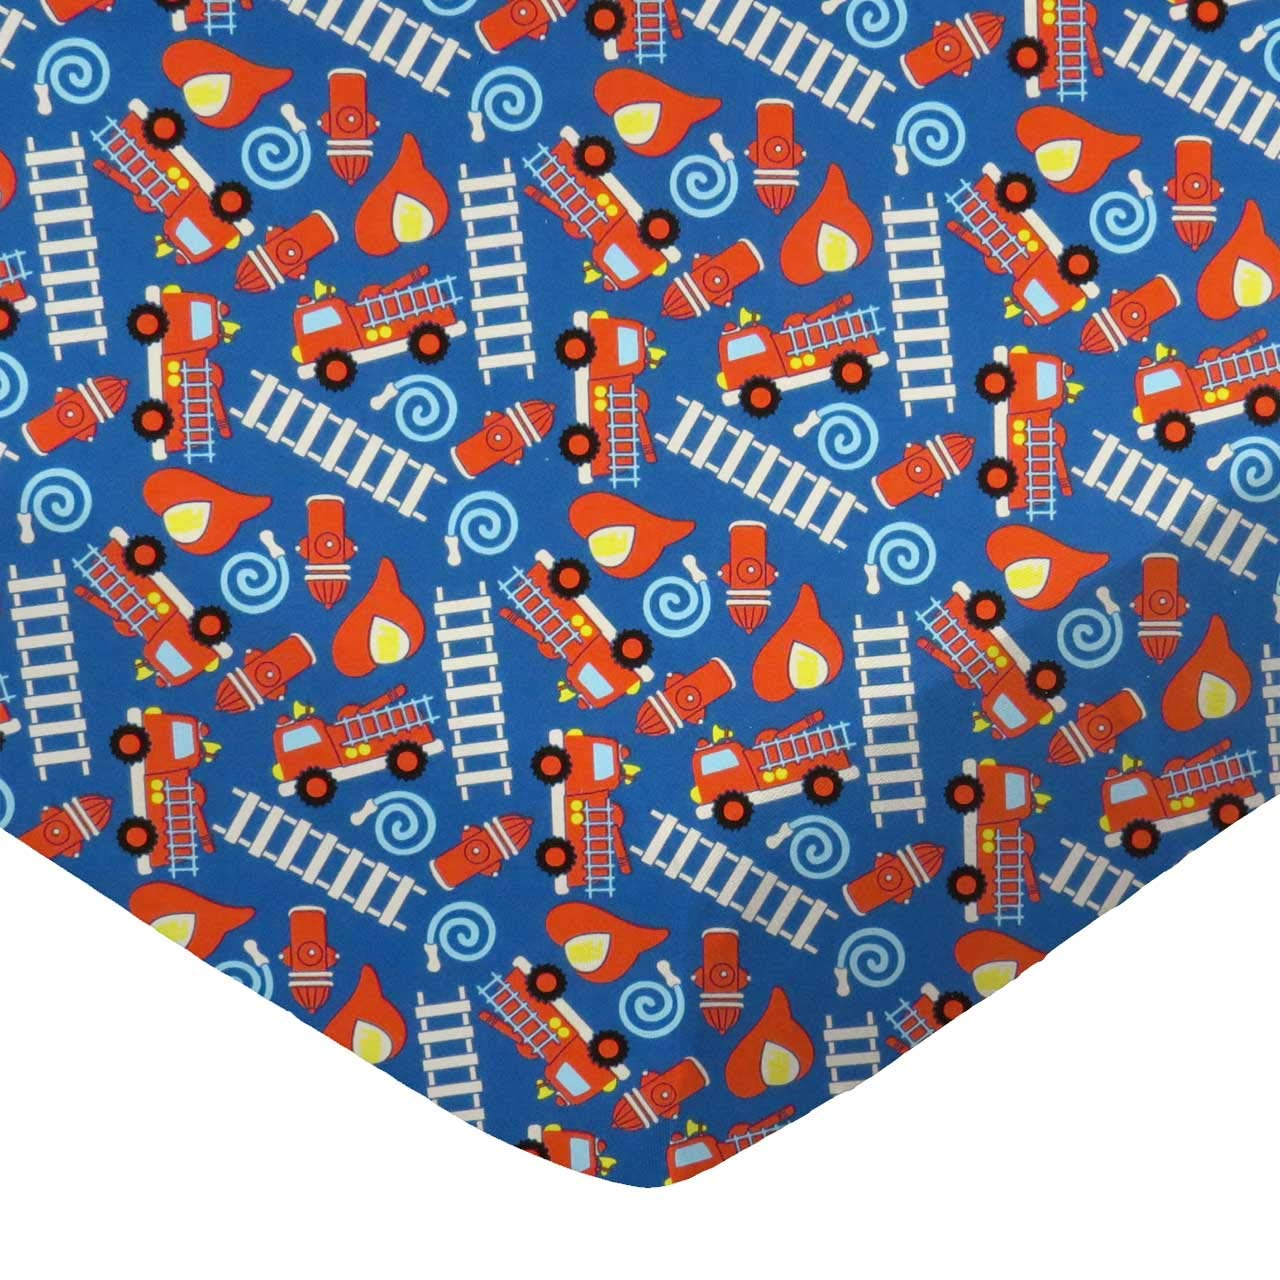 SheetWorld Fitted 100% Cotton Percale Play Yard Sheet Fits BabyBjorn Travel Crib Light 24 x 42, Fire Trucks Blue, Made in USA